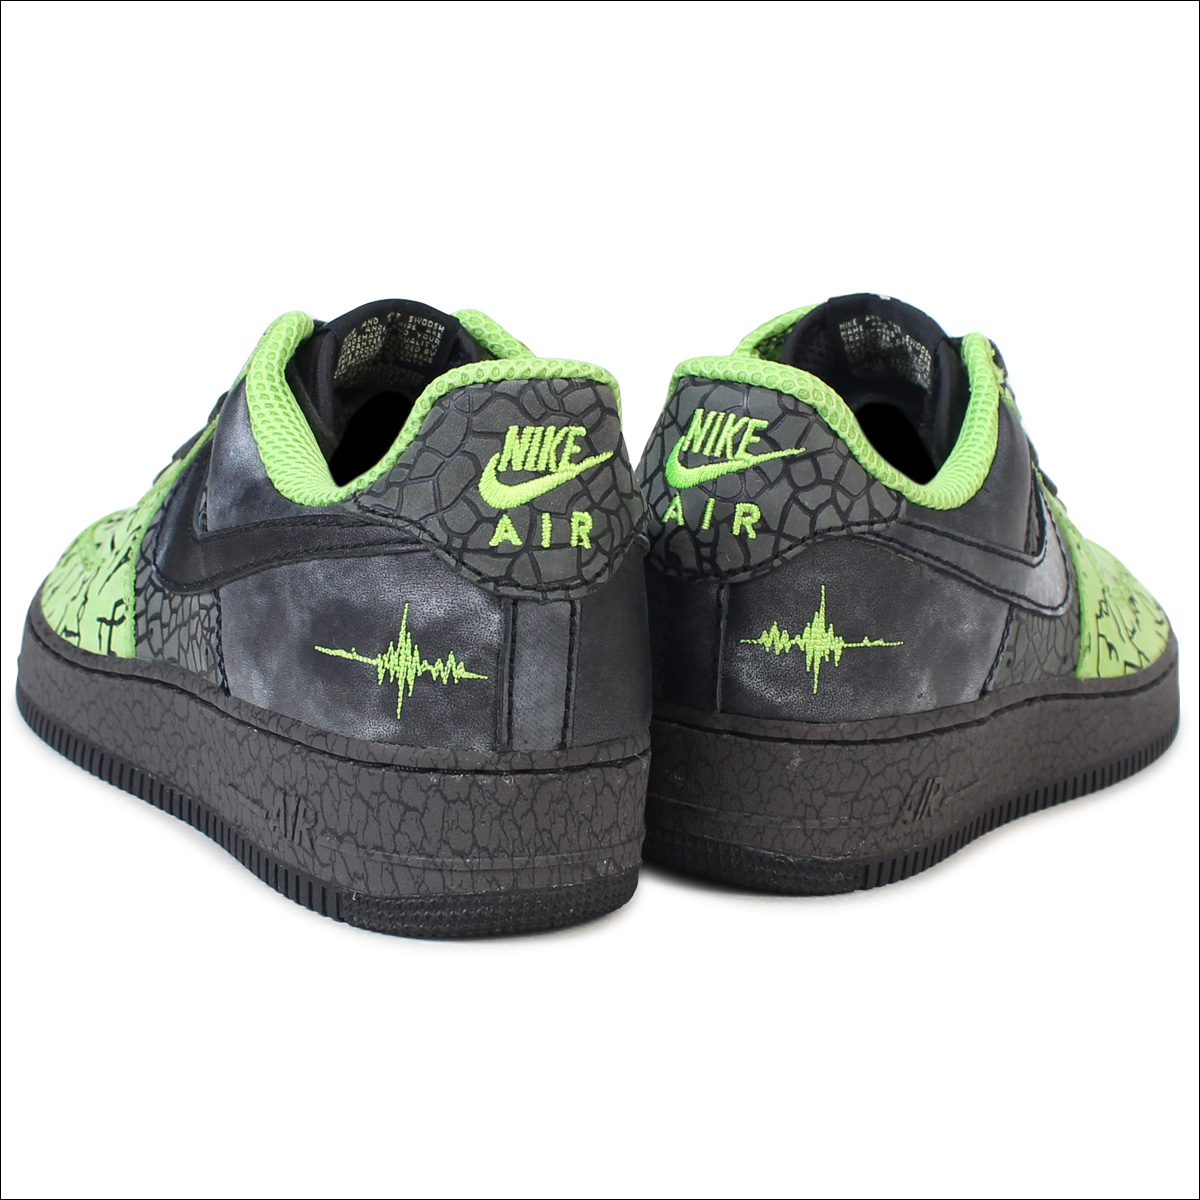 premium selection 151b4 cb0f9 NIKE air force 1 sneakers AIR FORCE 1 HUFQUAKE 315,206-301 low men shoes  green